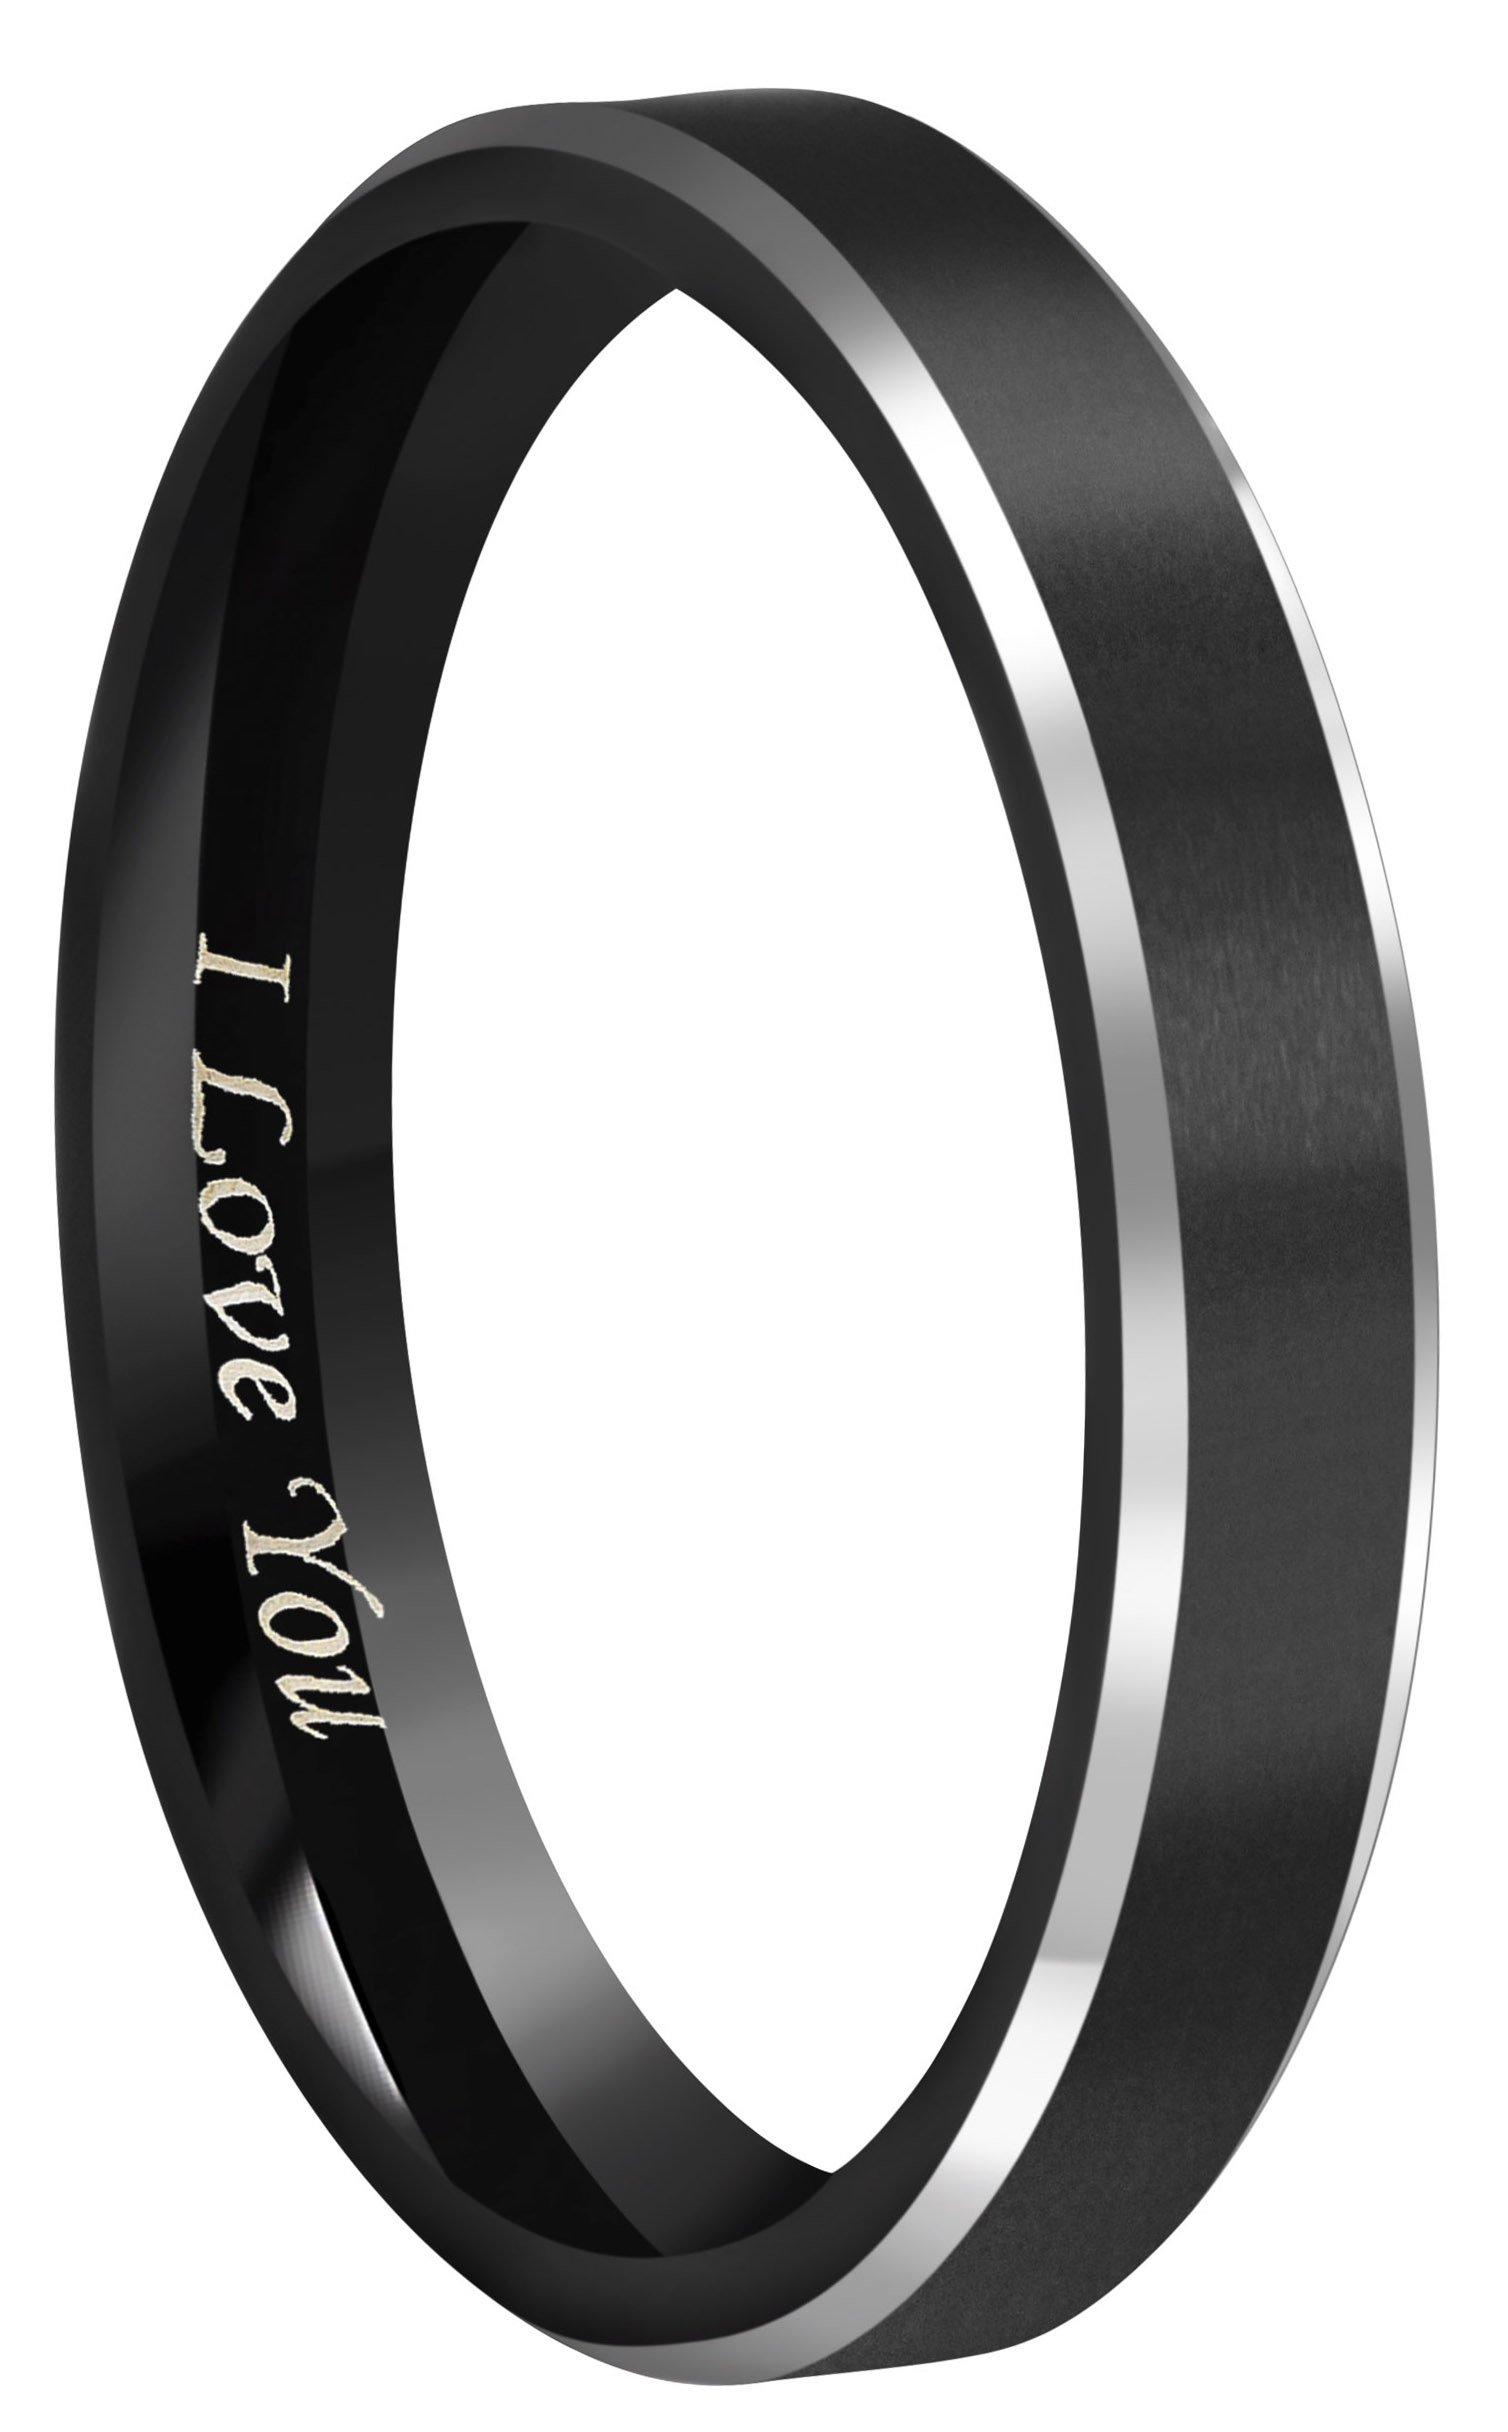 CROWNAL 4mm Black Tungsten Couple Wedding Bands Rings Men Women Polished Beveled Edges Matte Brushed Finish Engraved I Love You Size 3.5 To 17 (4mm,5.5)